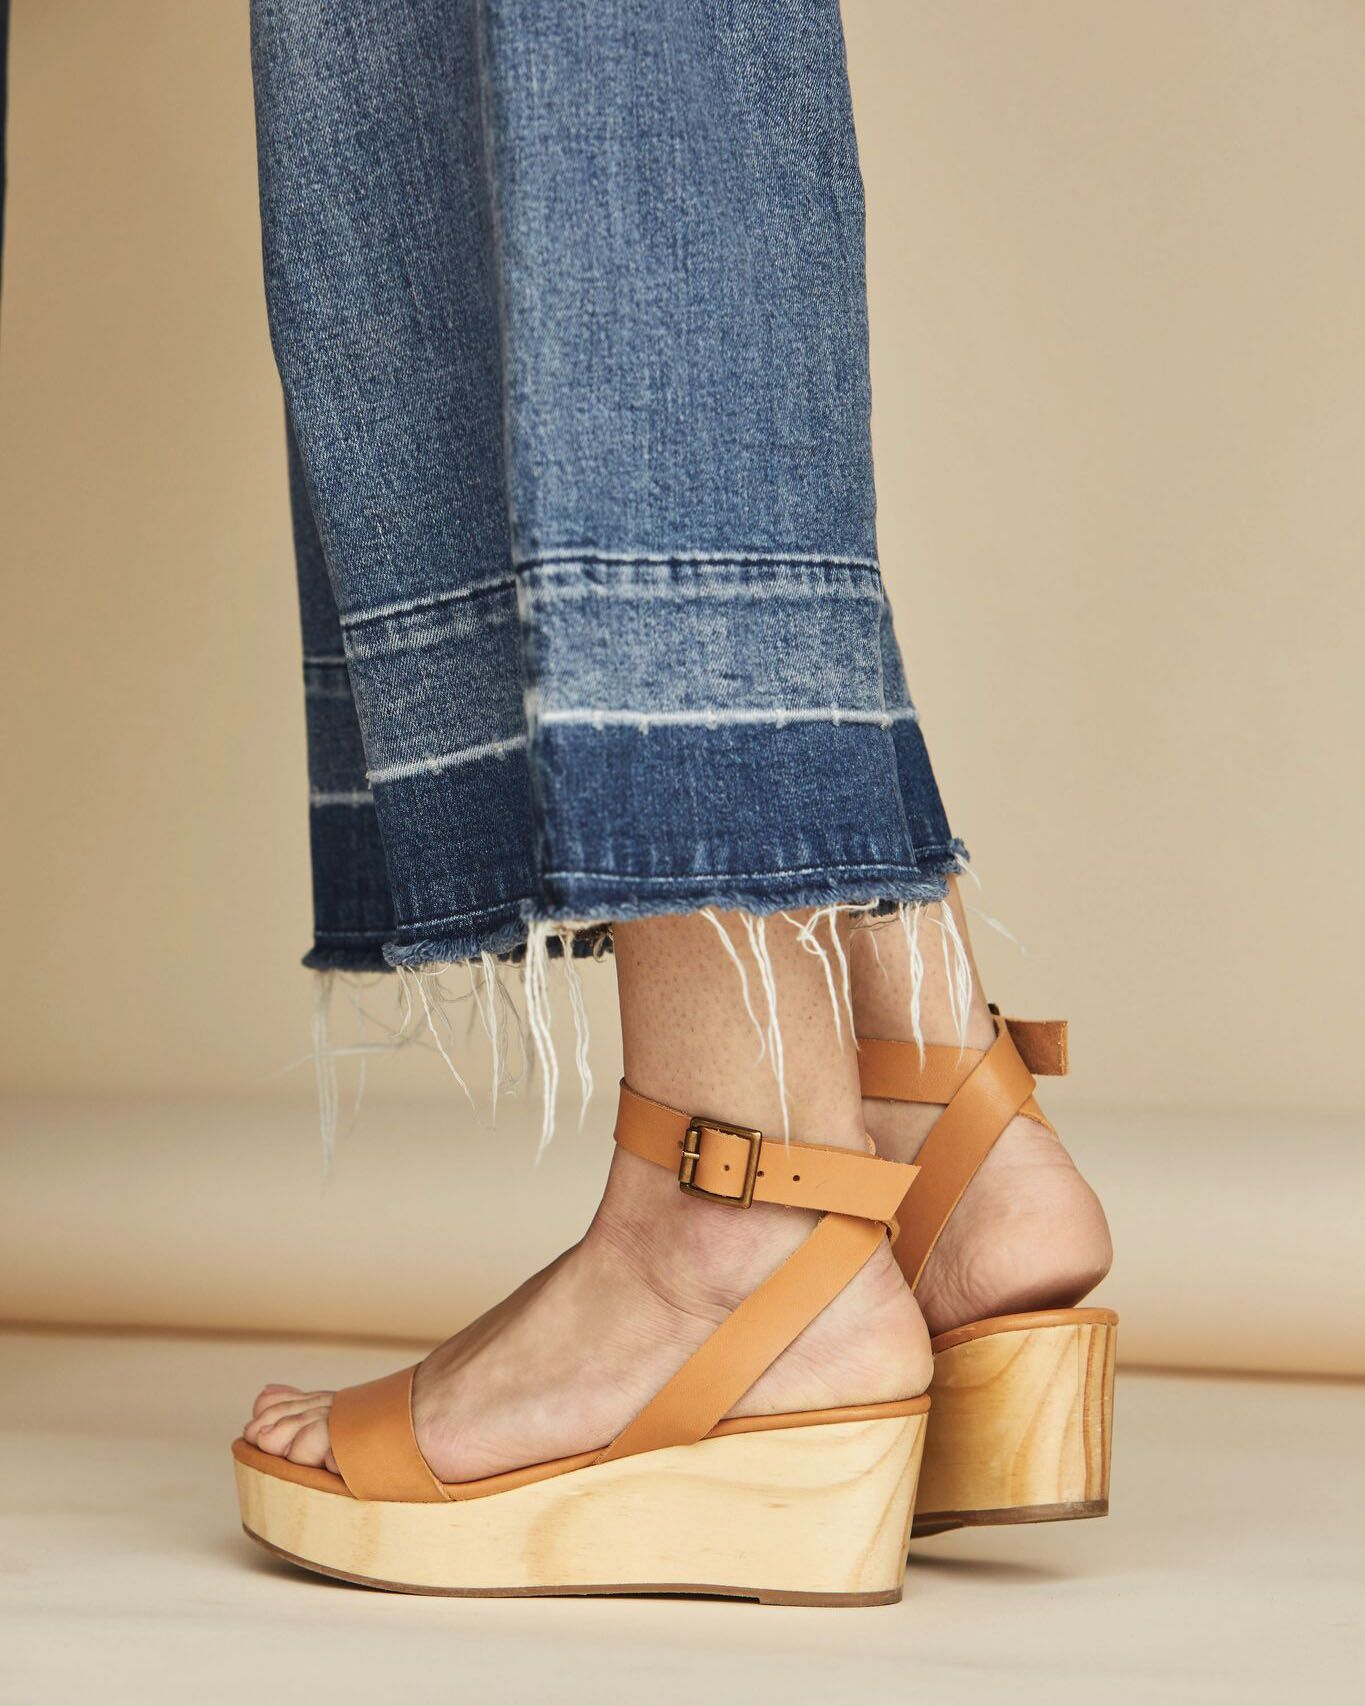 89aef0344d The Sarita Wooden Wedge will quickly become your go-to summer sandal for  weddings,